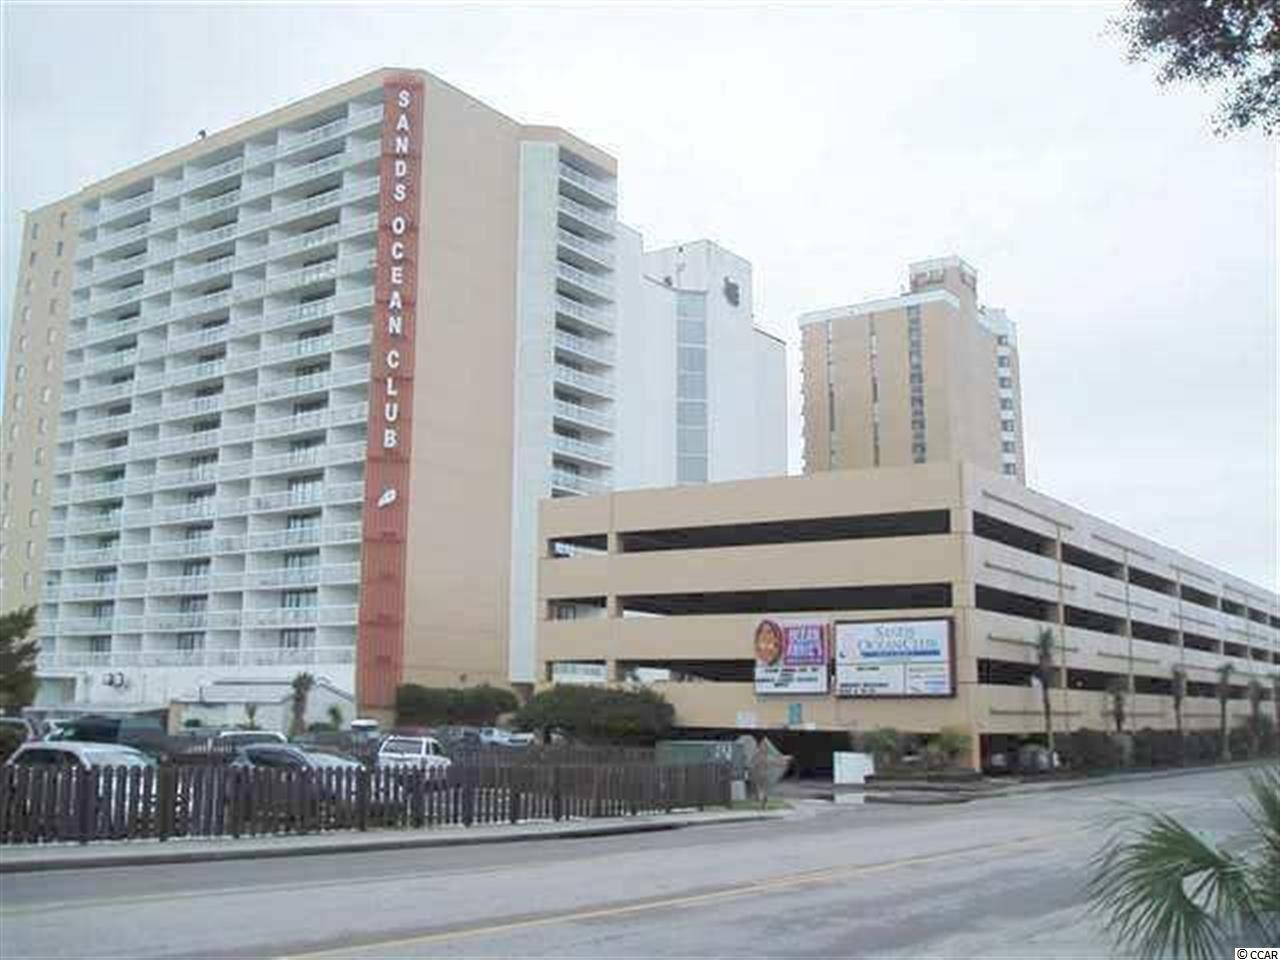 Ocean View Condo in SANDS OCEAN : Myrtle Beach South Carolina